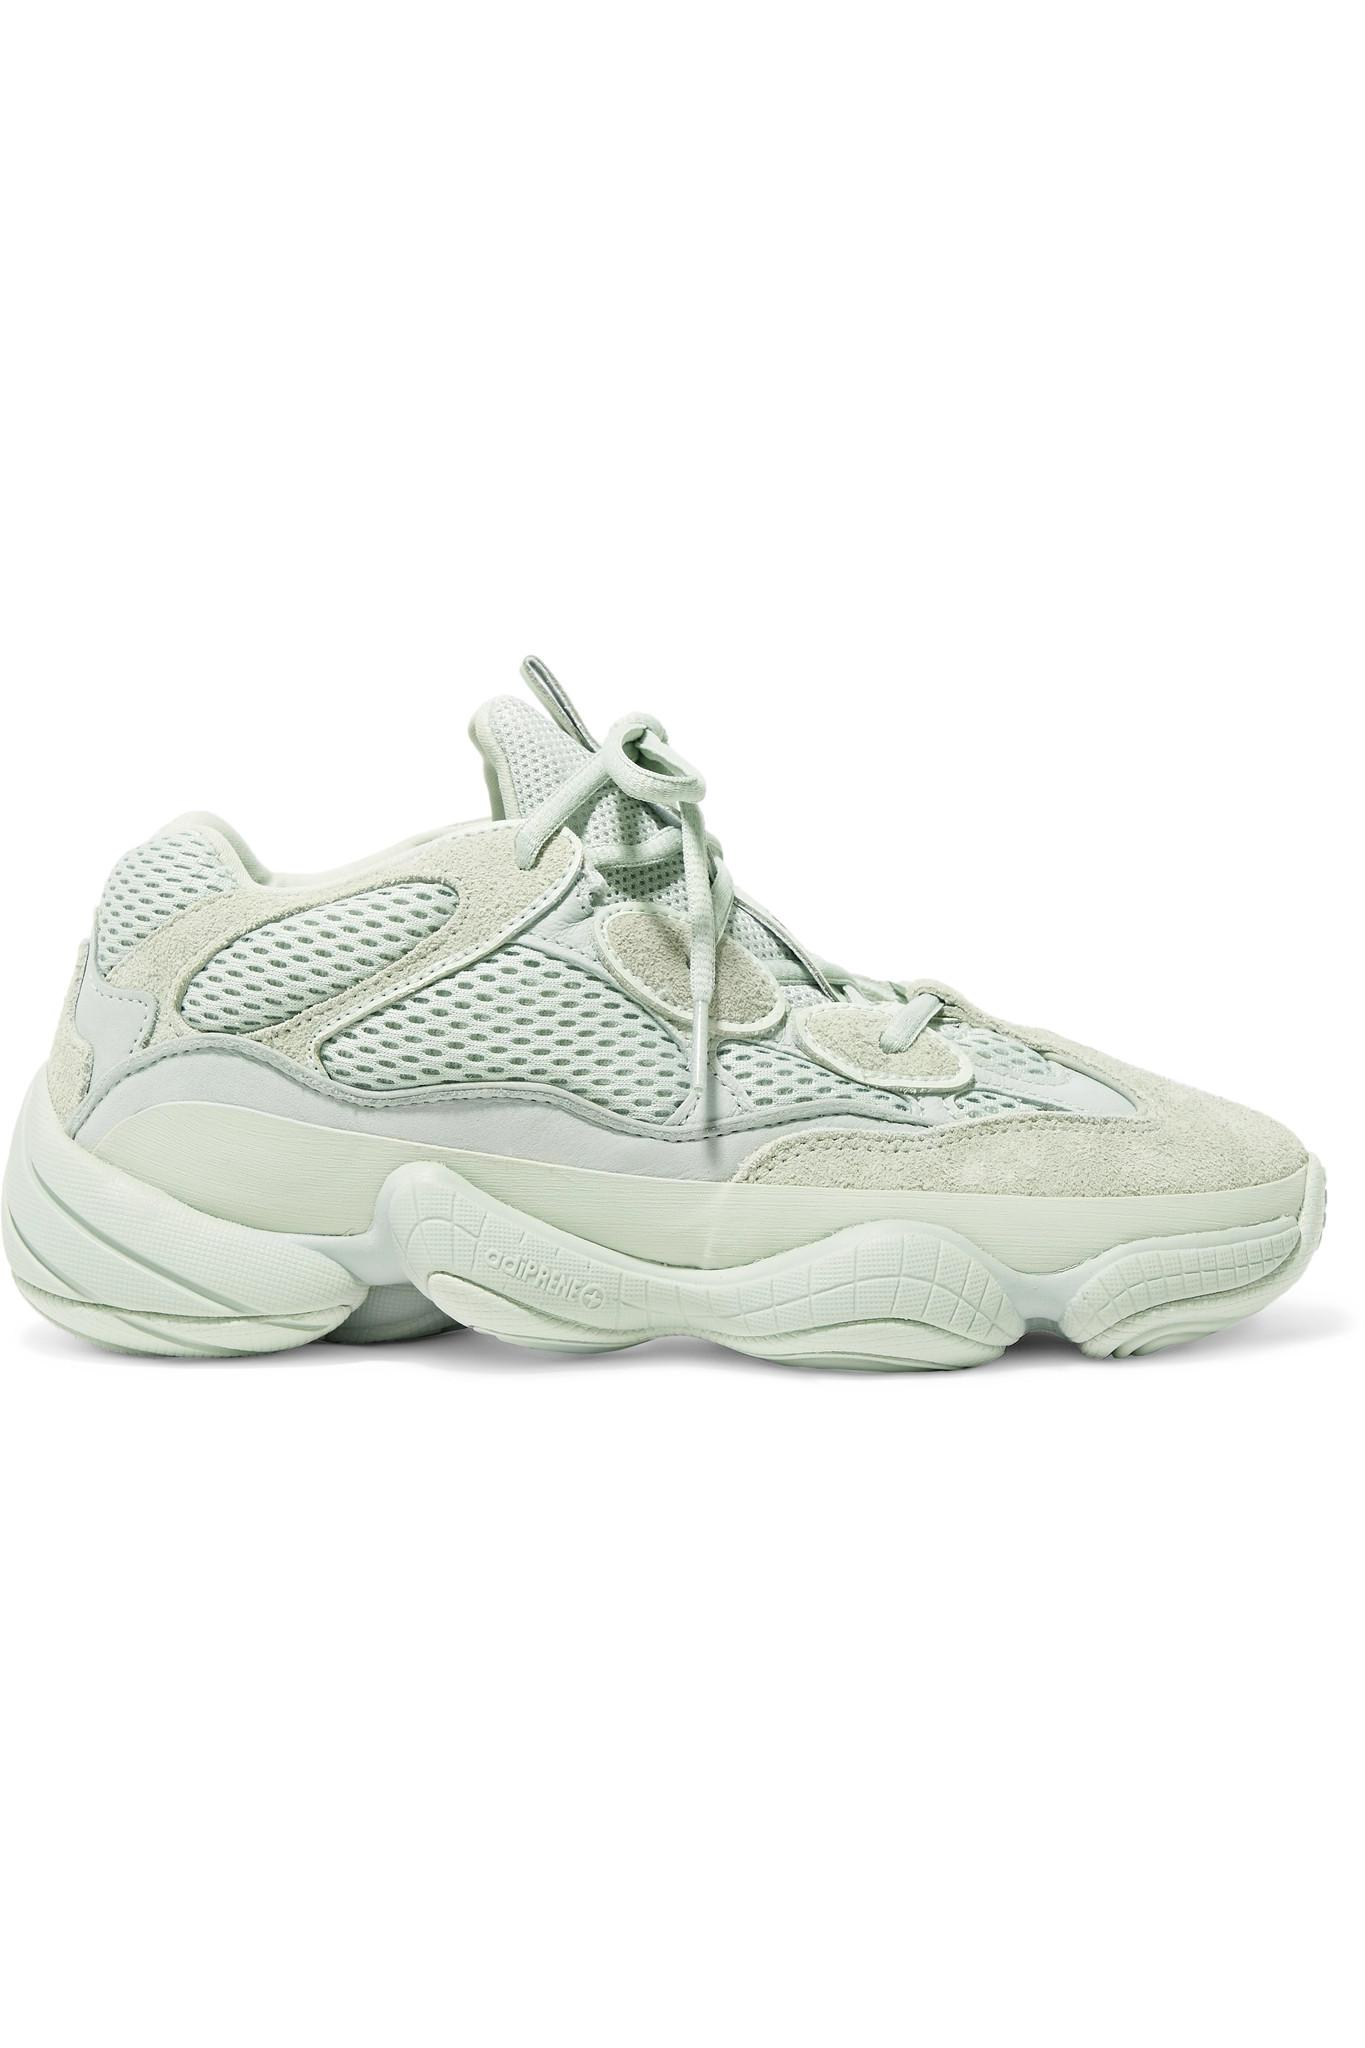 5fbd84e7f06 Lyst - adidas Originals Yeezy 500 Leather